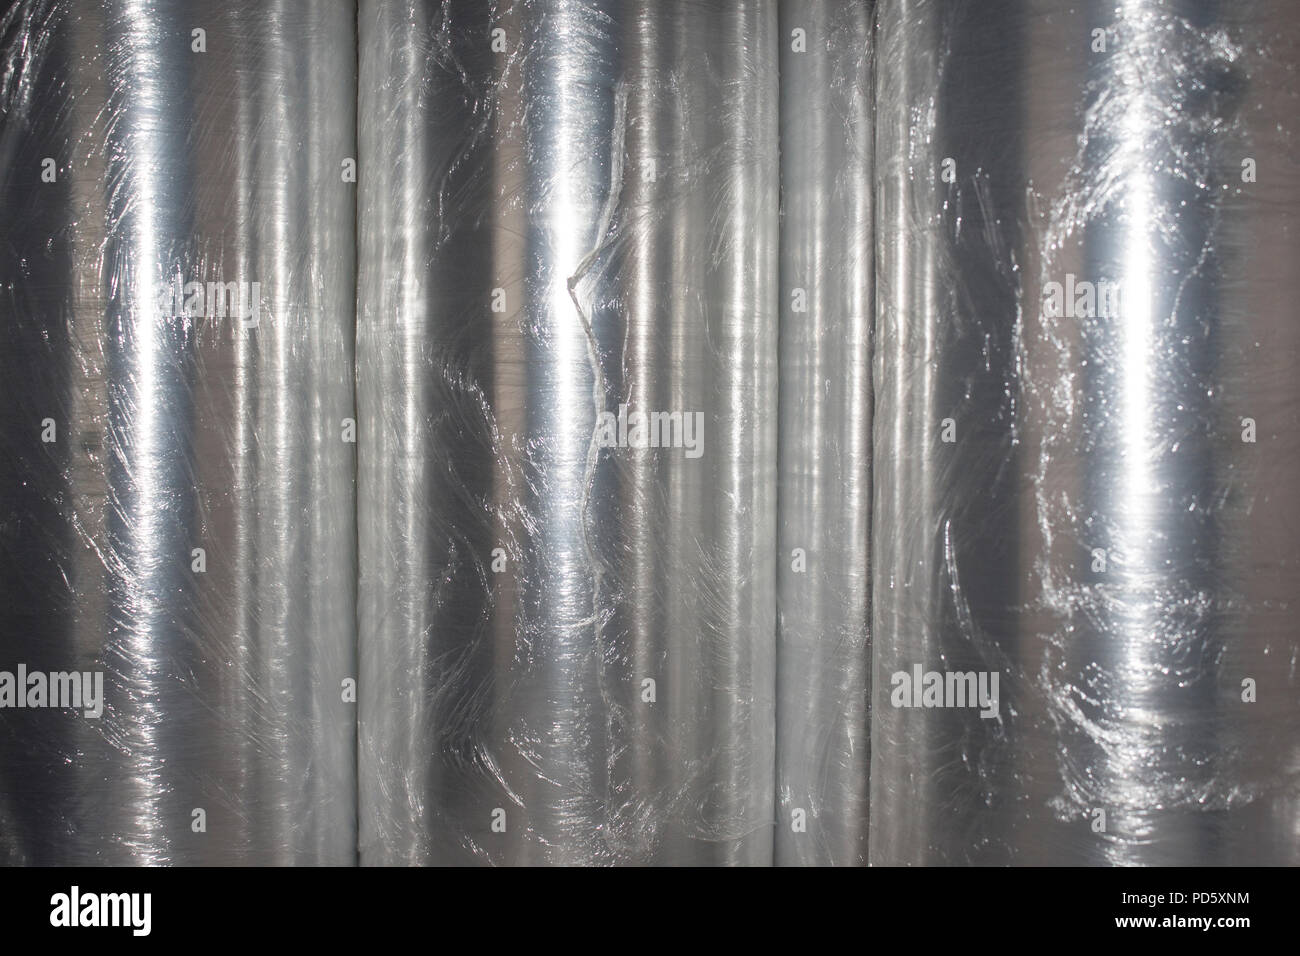 Rolls of clear plastic wrapping foil for product packaging and safe industrial shipping transport - Stock Image